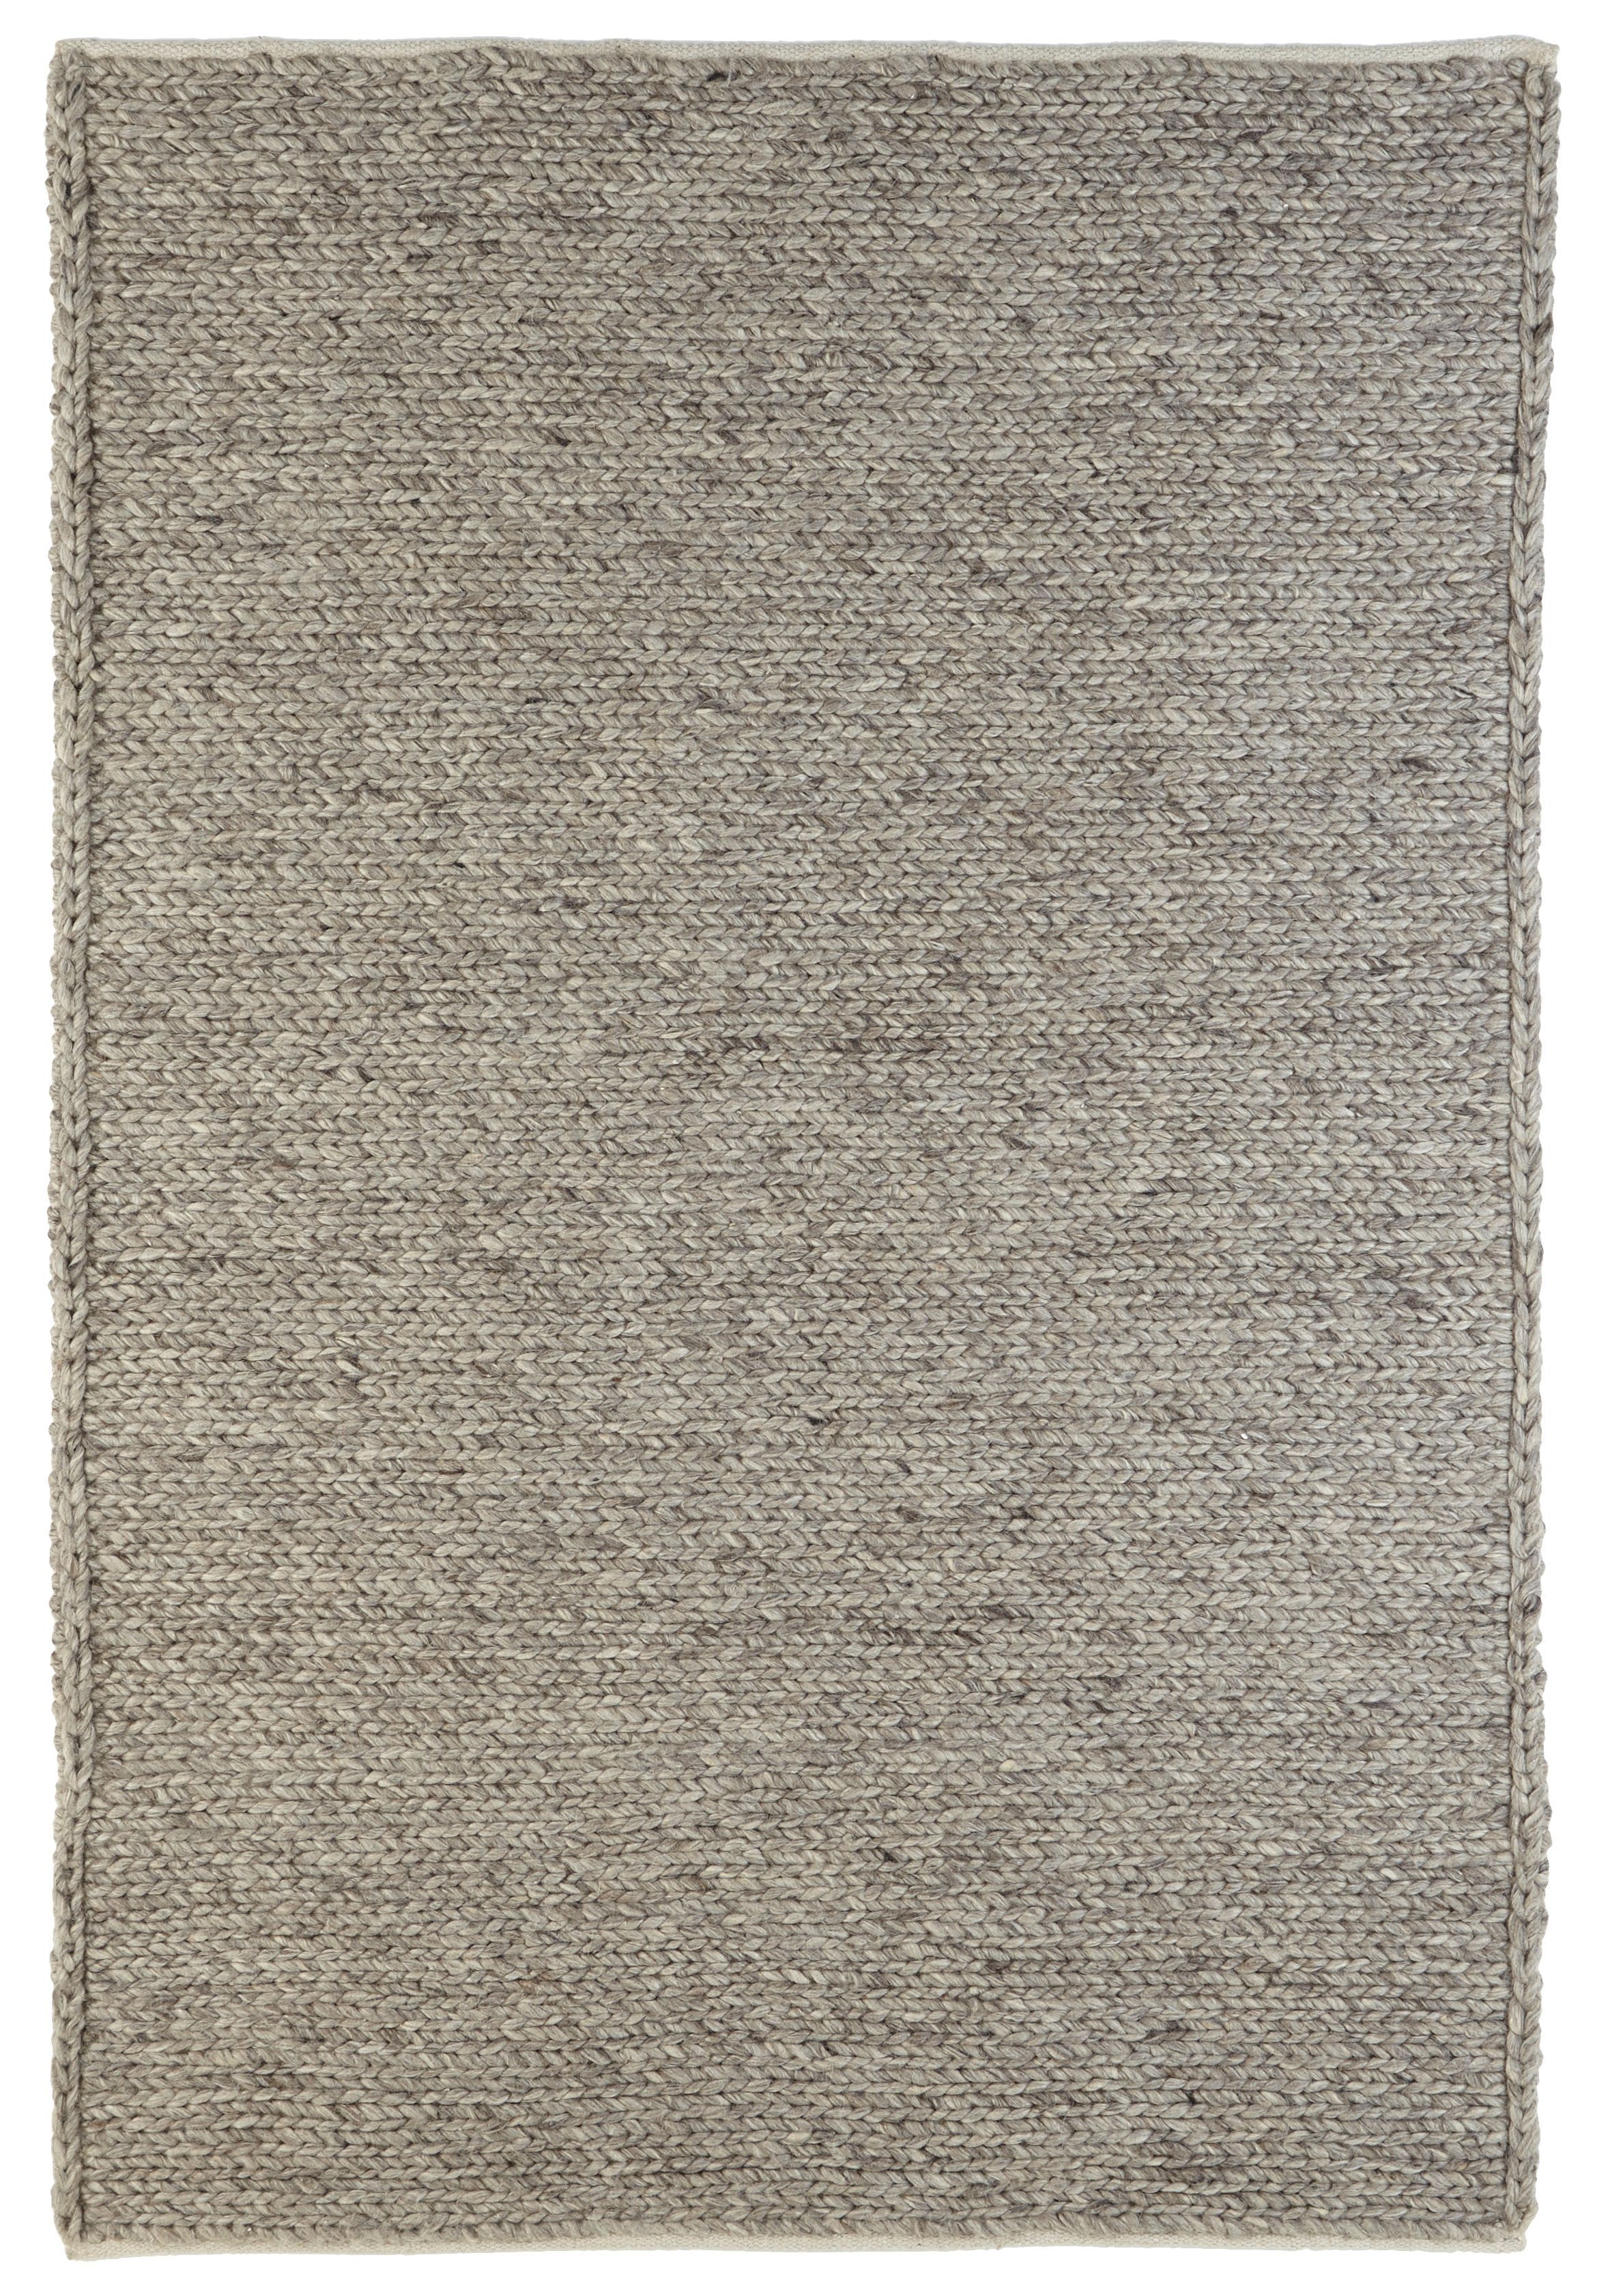 Colours Claudine Grey Thick Knit Rug L 2300mm W 1600mm Departments Diy At B Q